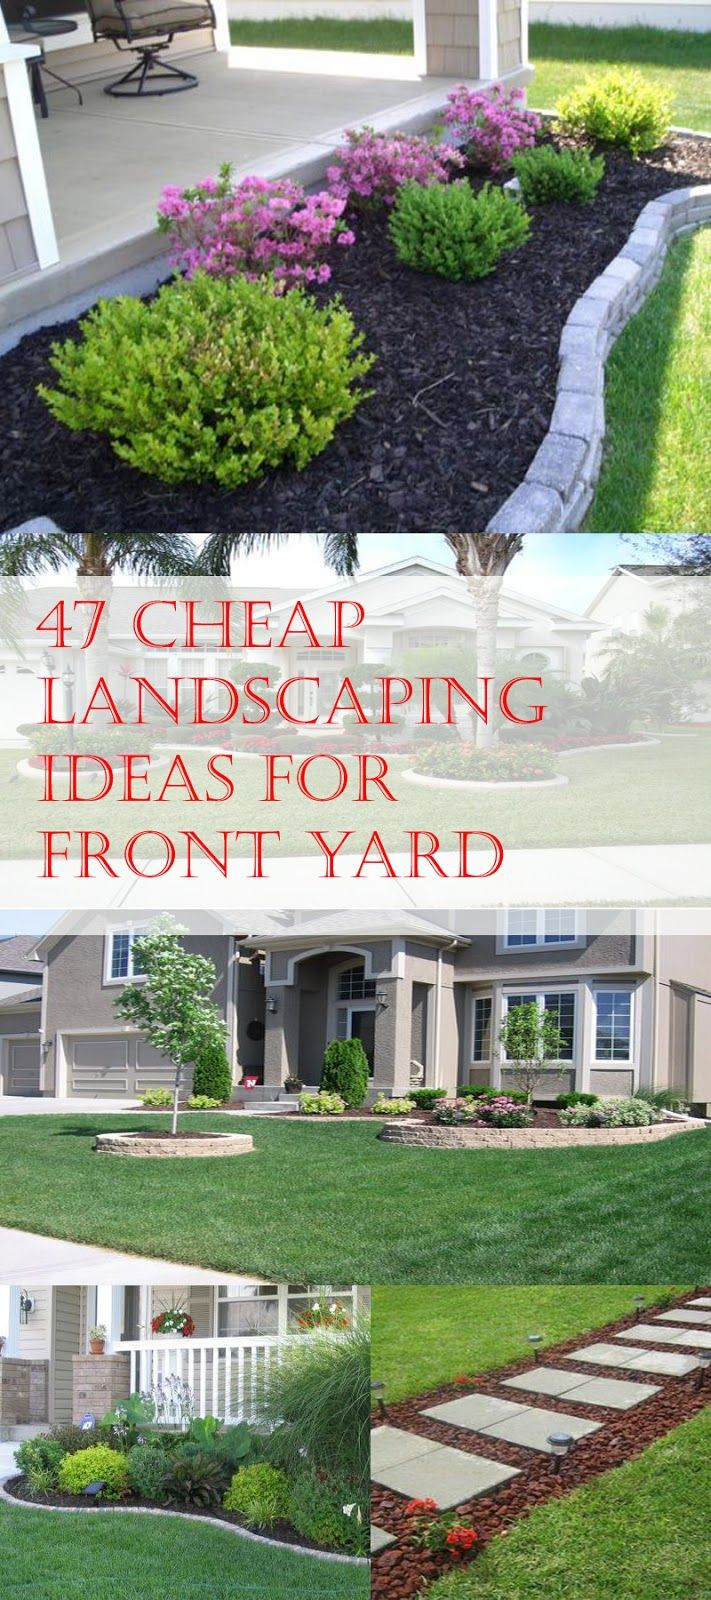 best 25 front yard landscaping ideas on pinterest front landscaping ideas yard landscaping. Black Bedroom Furniture Sets. Home Design Ideas